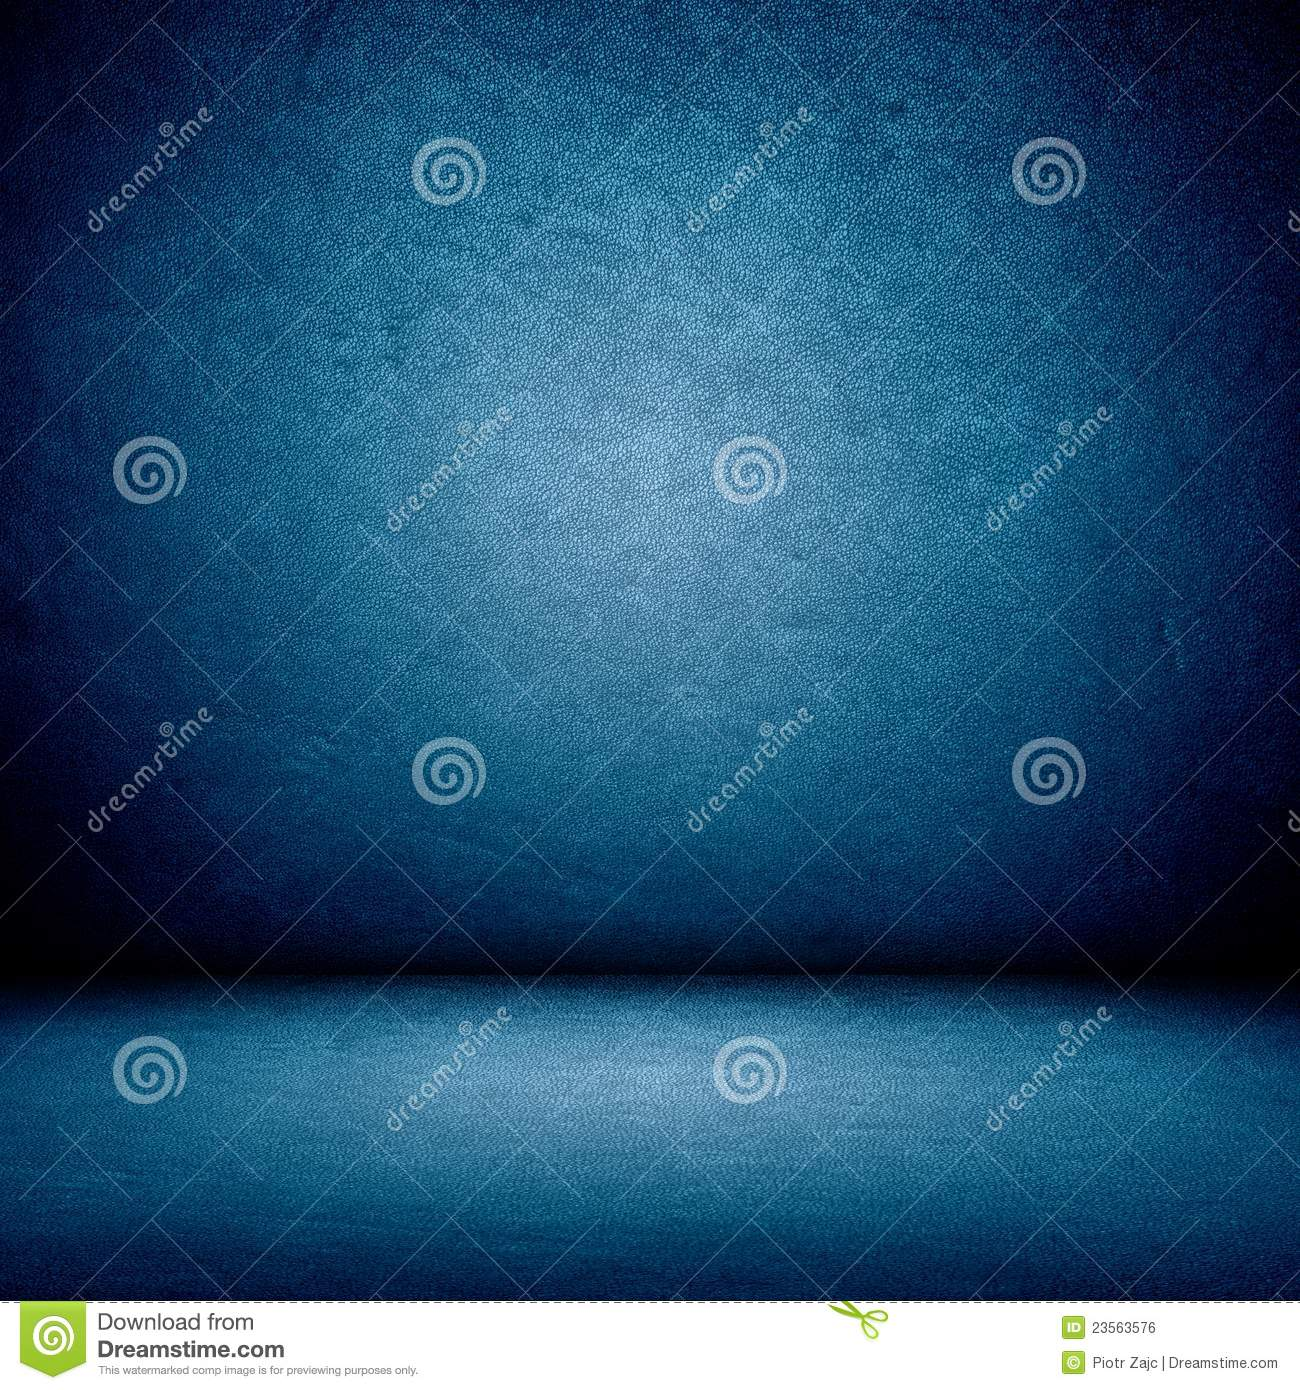 Blue Wall And Floor Interior Stock Photo - Image of floor ...